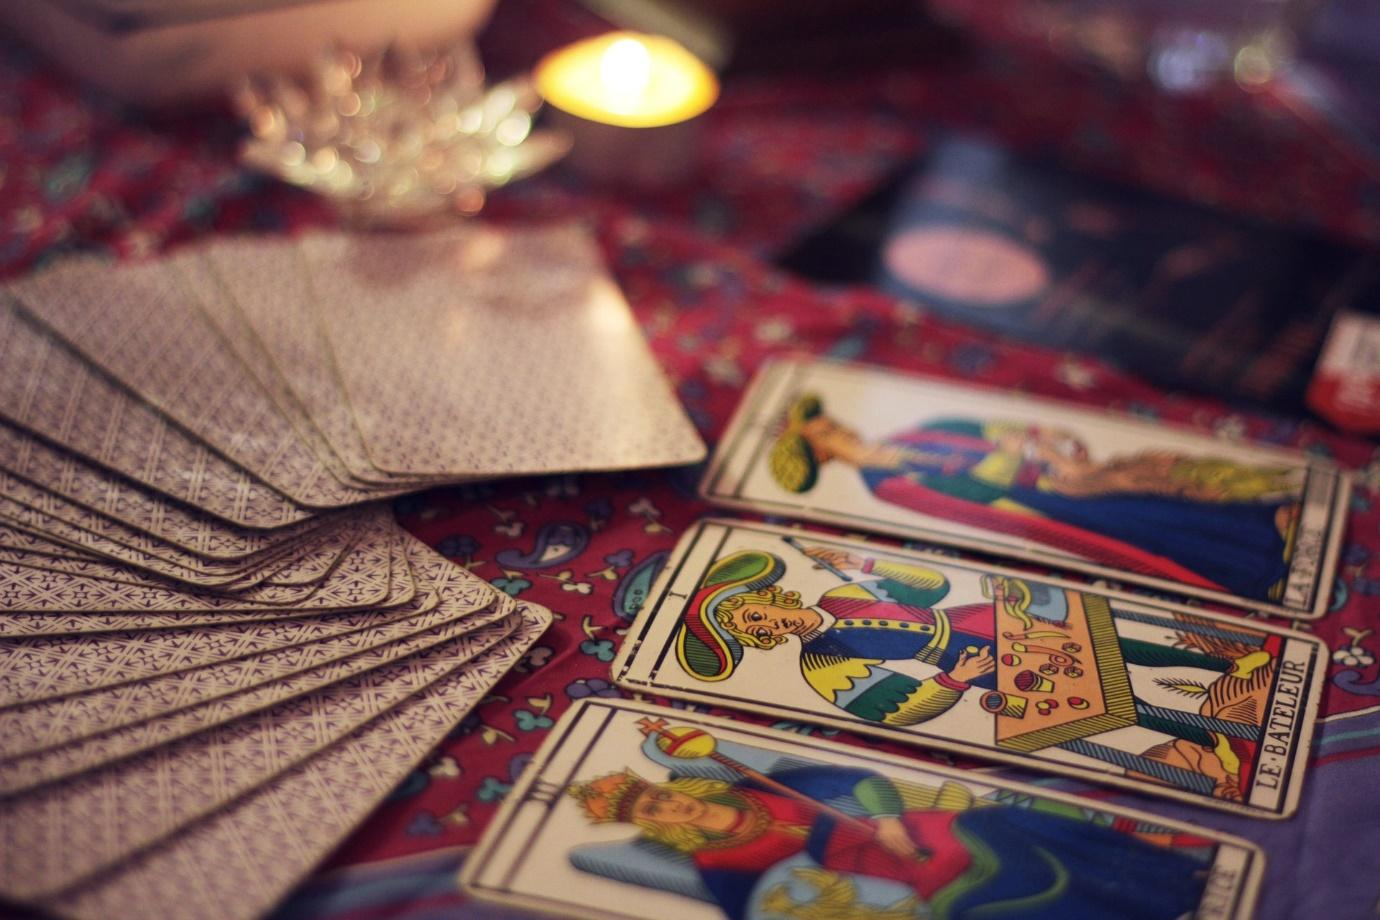 Tarot cards can help guide you.